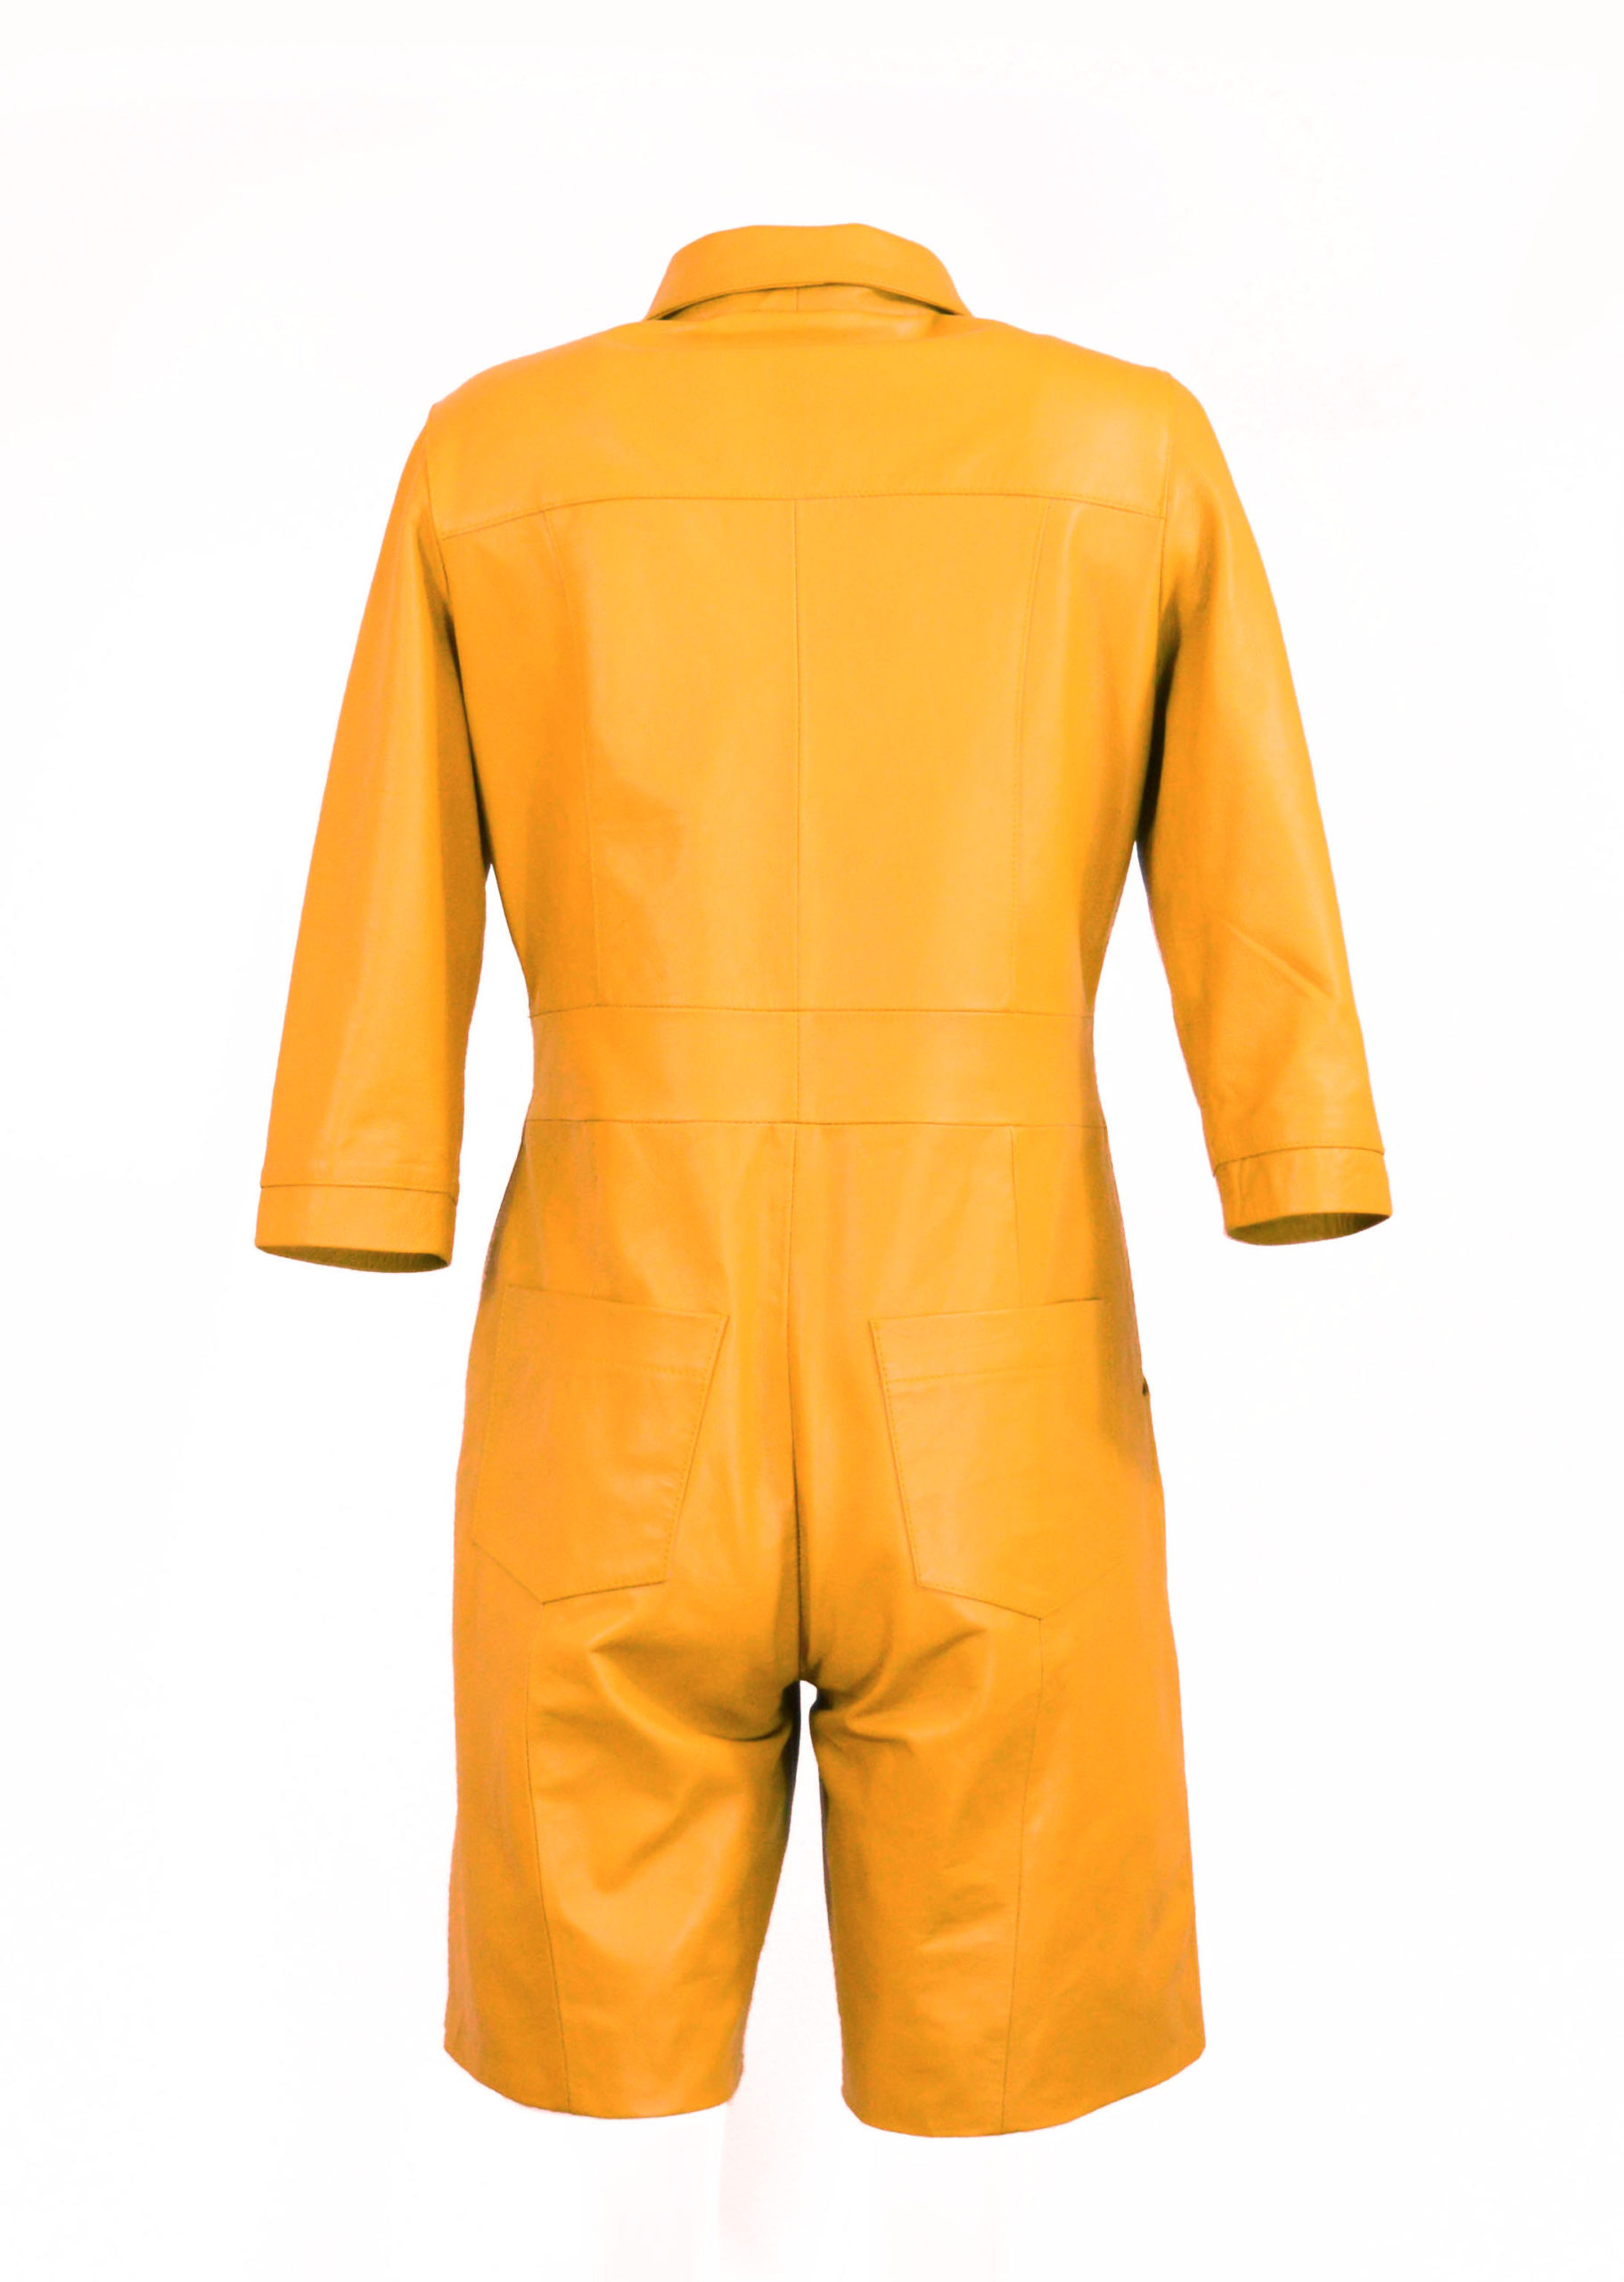 Zoef Leather Jumpsuit Mia Yellow 2